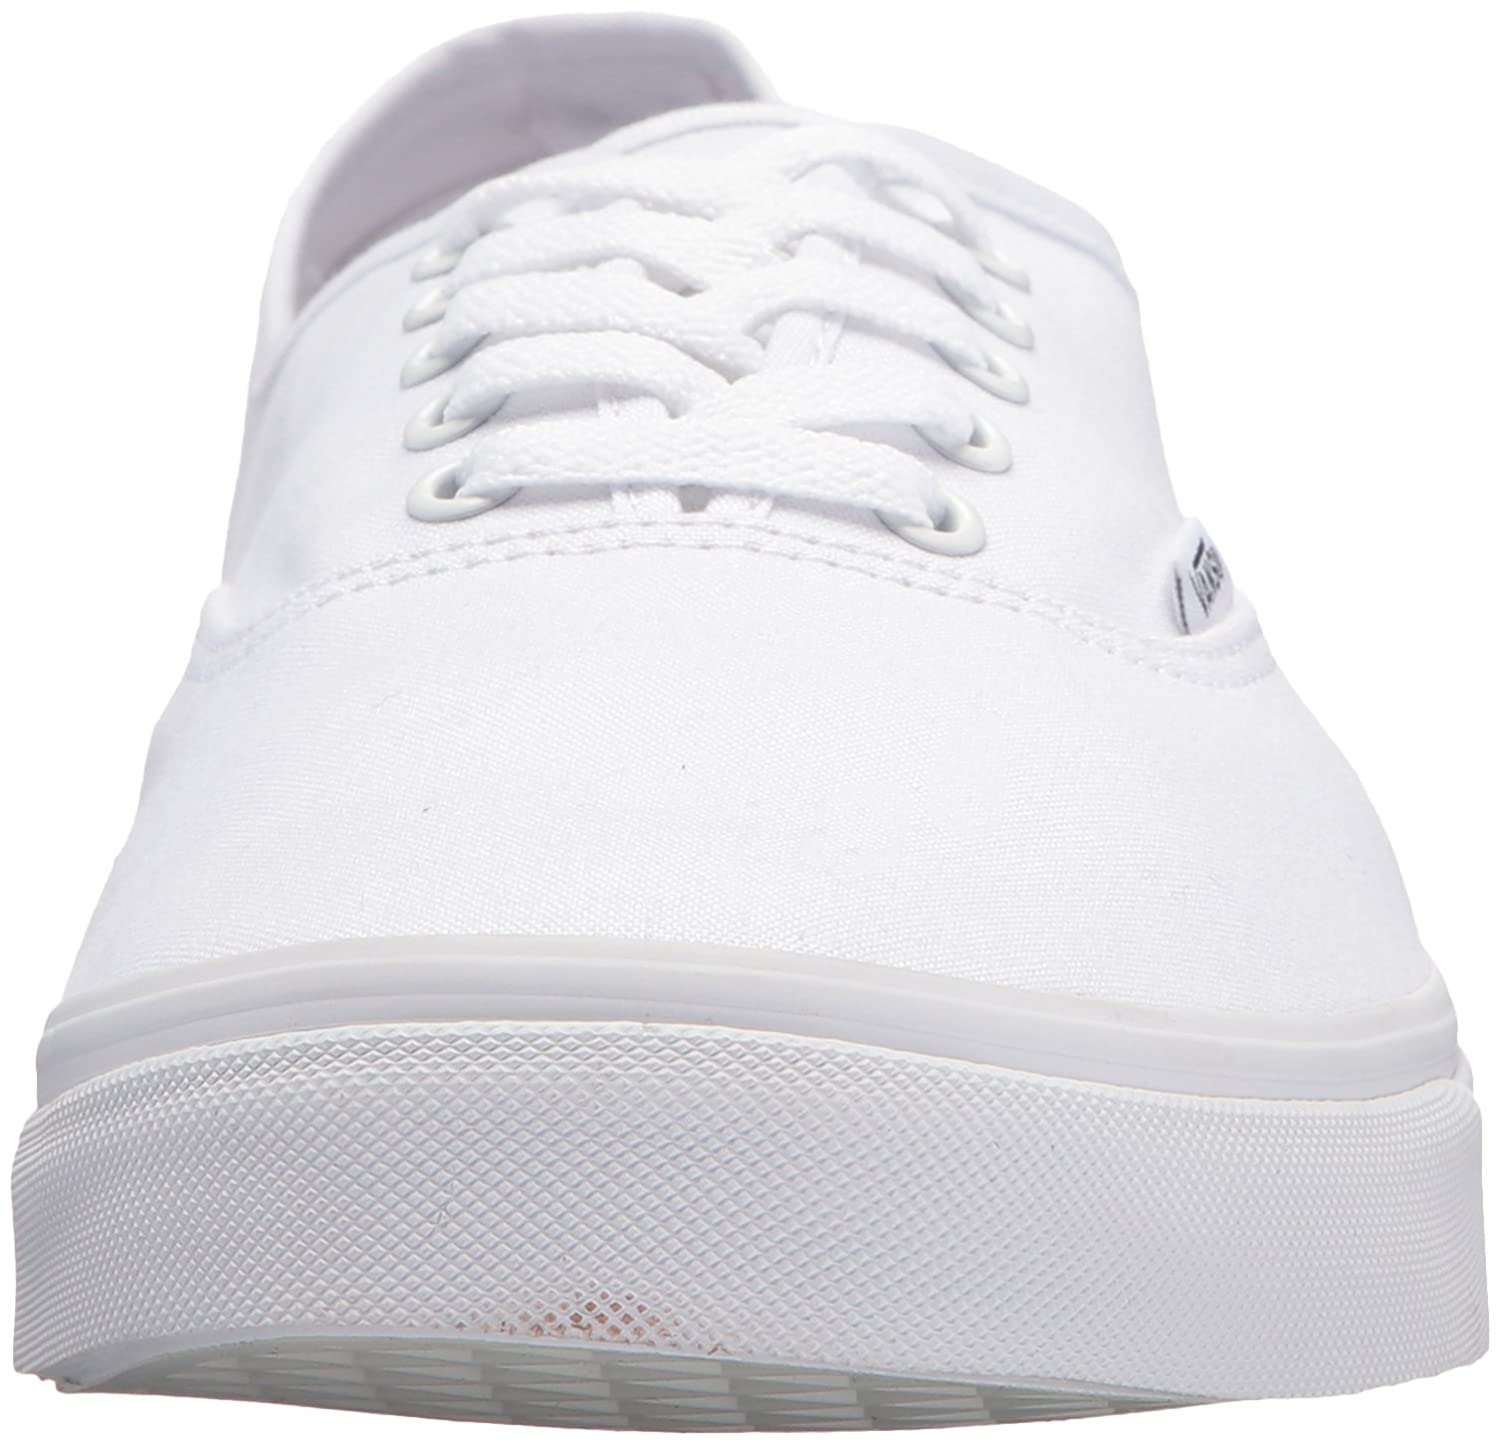 Vans Herren Authentic Core Classic Sneakers B01NBGWV90 9.5 M US US Women / 8 M US US Men|True White 25de53